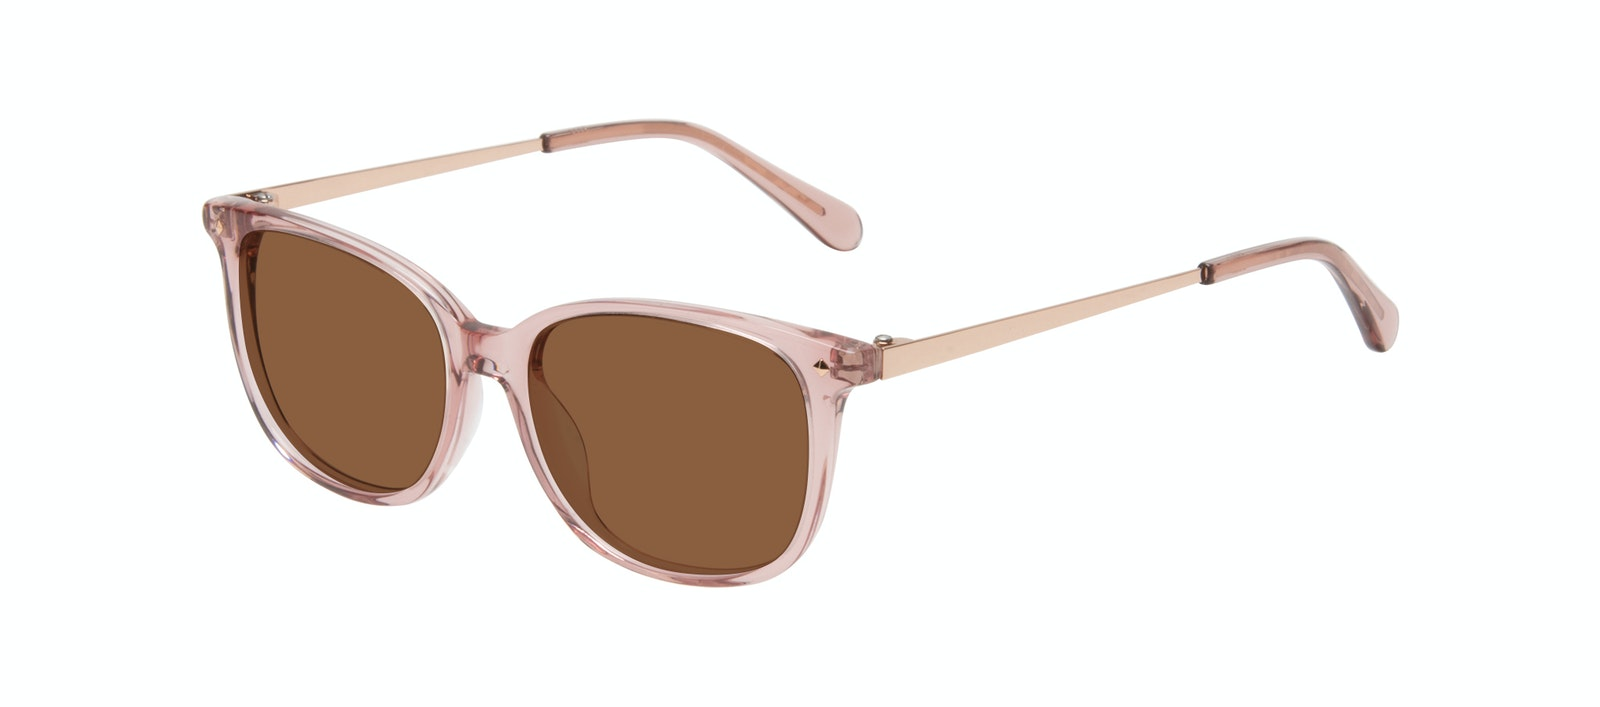 Affordable Fashion Glasses Rectangle Square Sunglasses Women Refine XS Rose Tilt